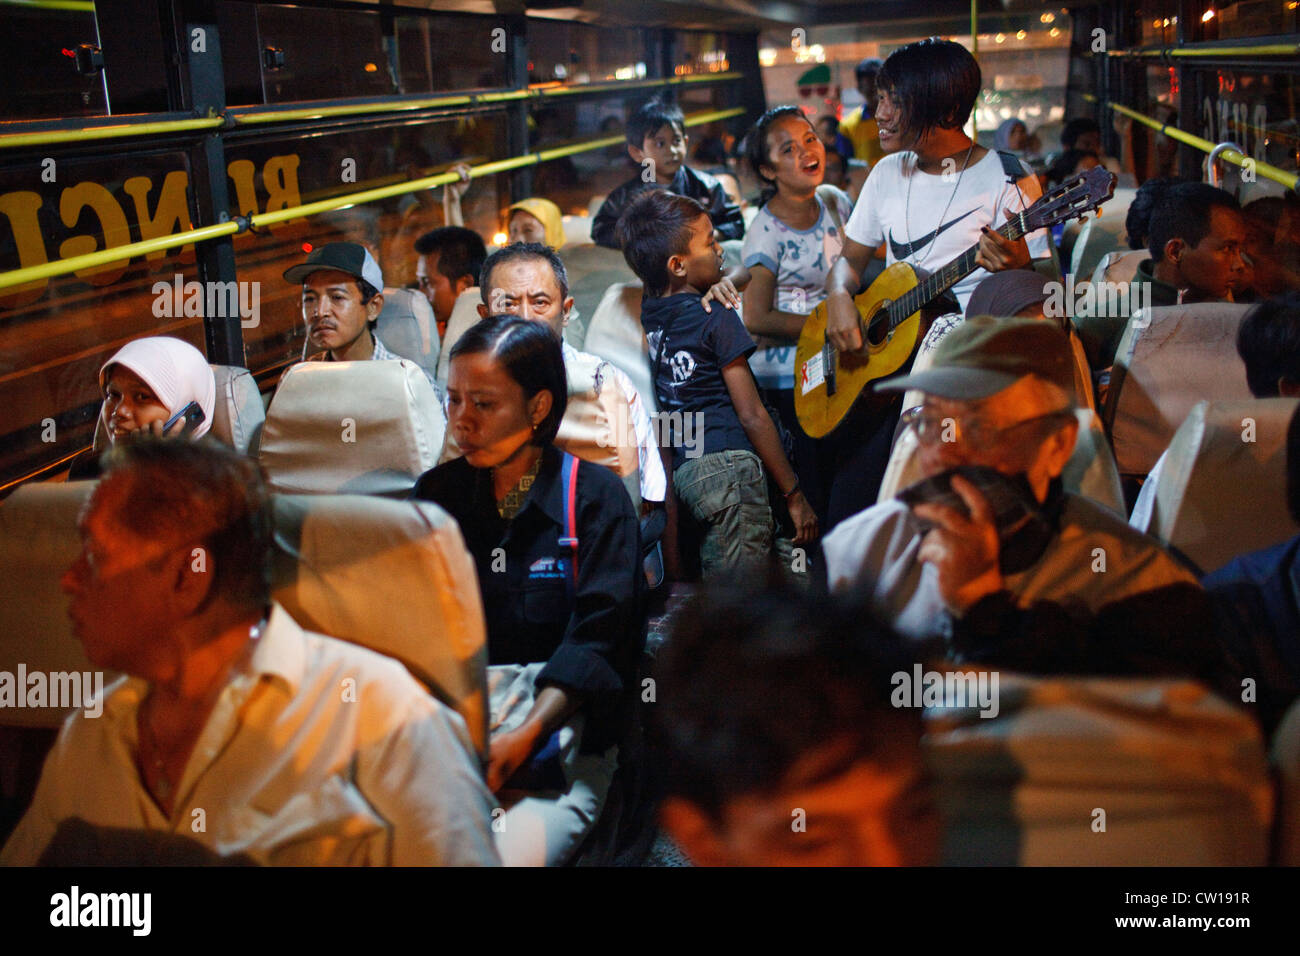 Buskers (ngamen) play music on a public bus at night in Surabaya, Indonesia. - Stock Image